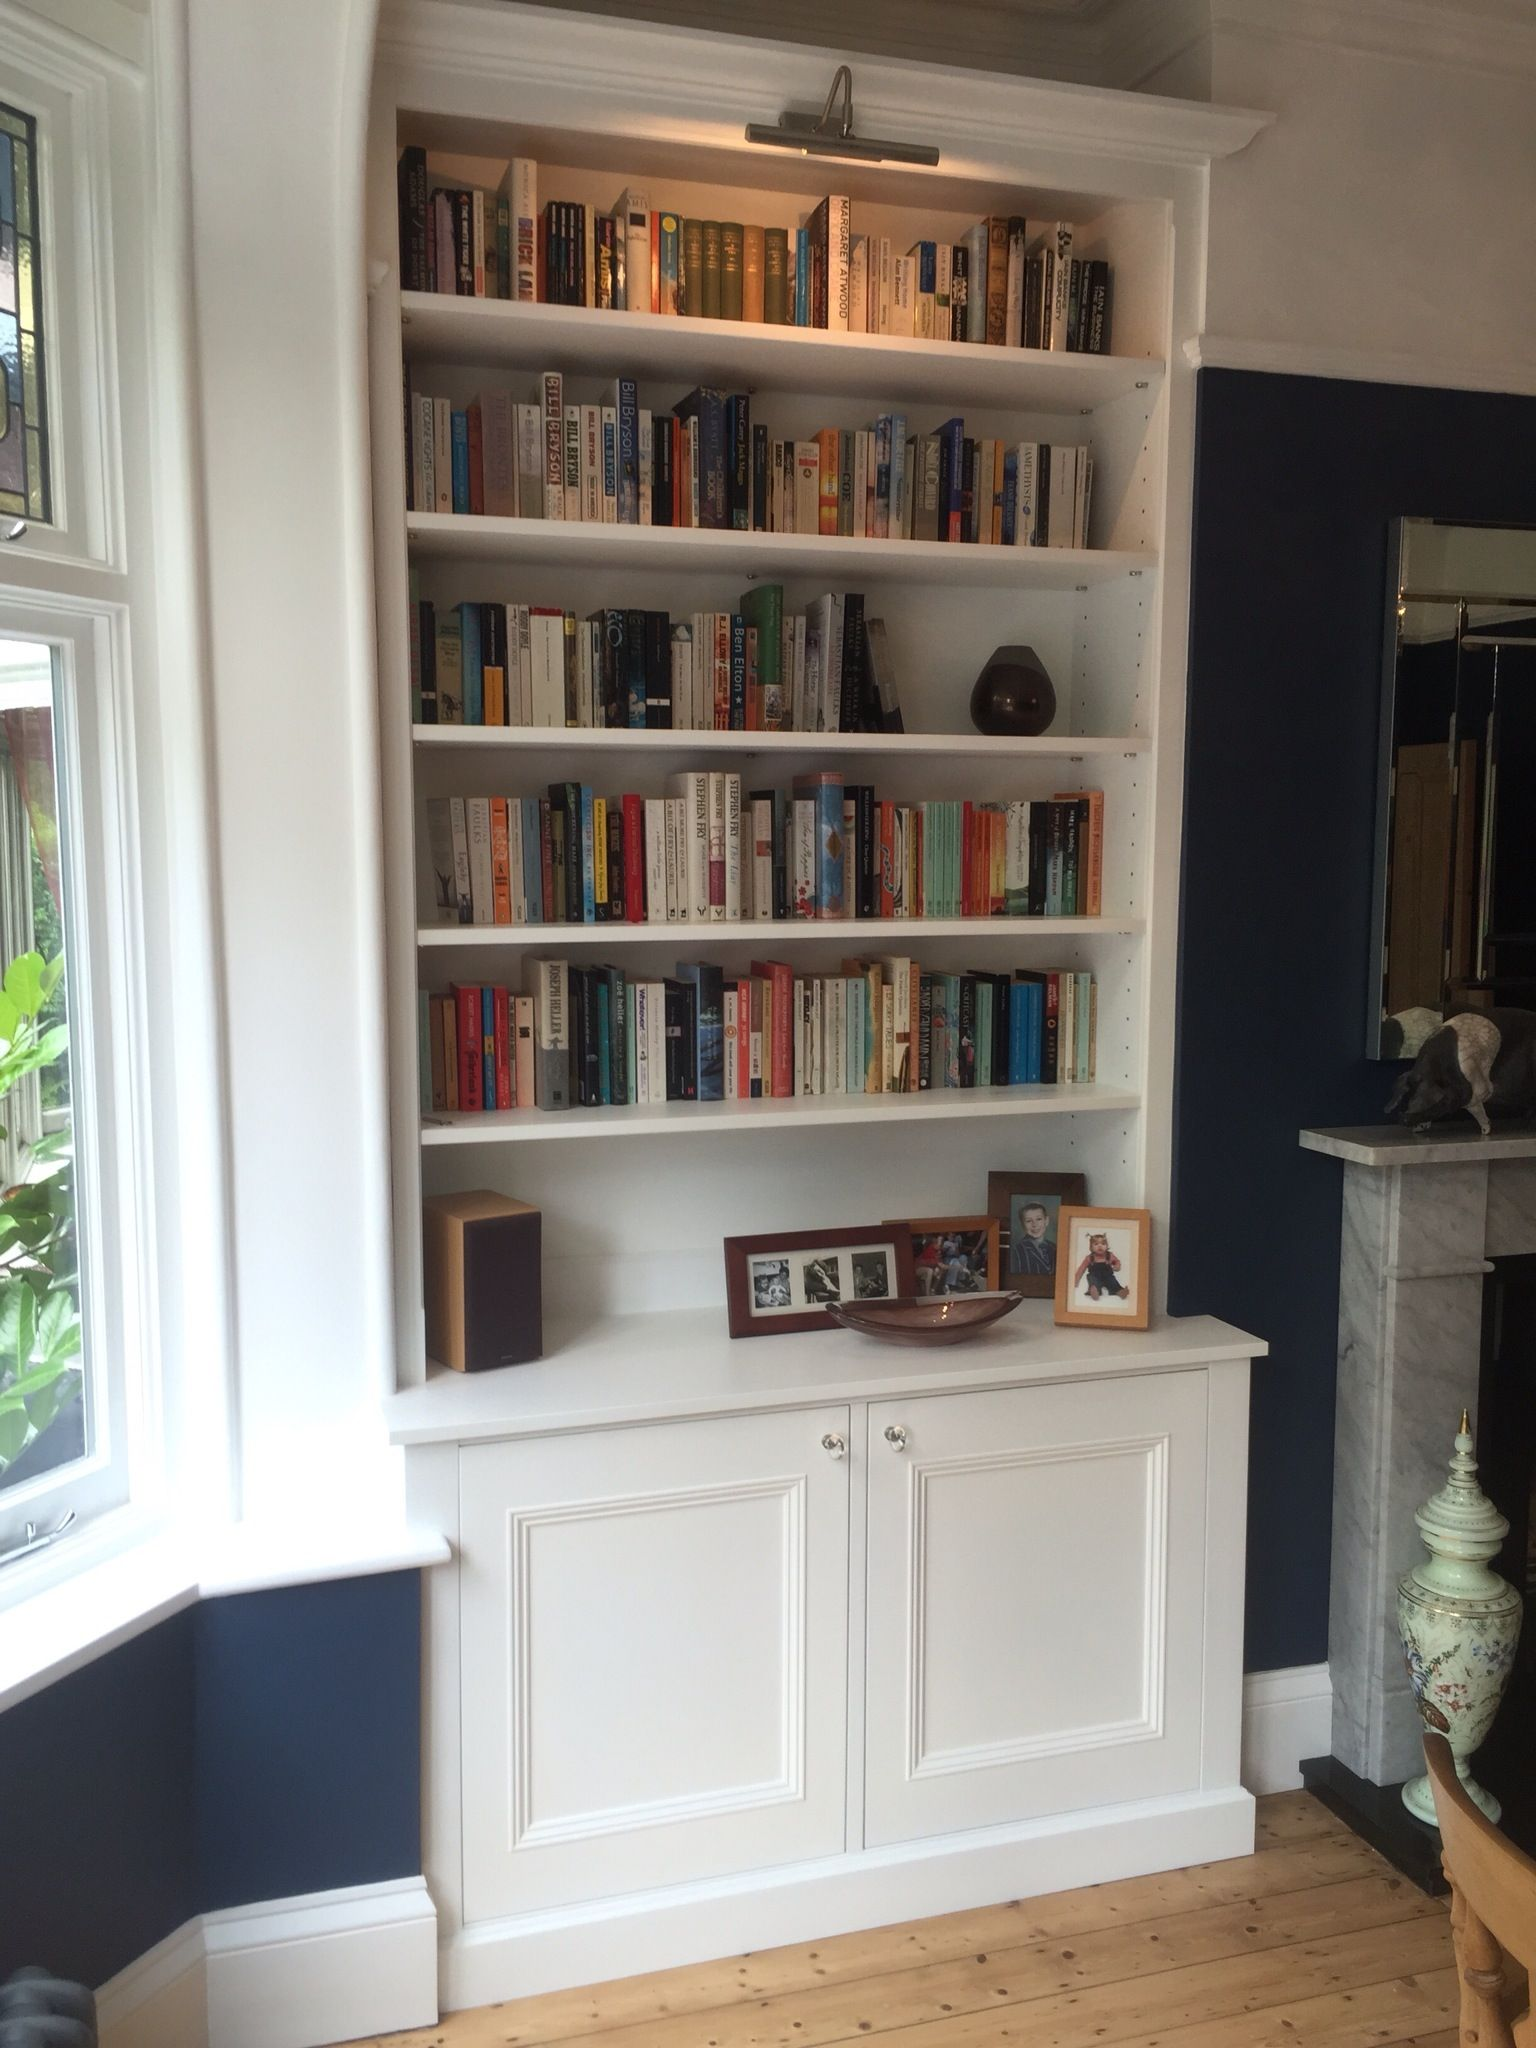 Traditional Alcove Cabinet With Adjustable Shelves Fitted With Panelled Doors And Pictu Bookshelves In Living Room Living Room Shelves Dining Room Inspiration